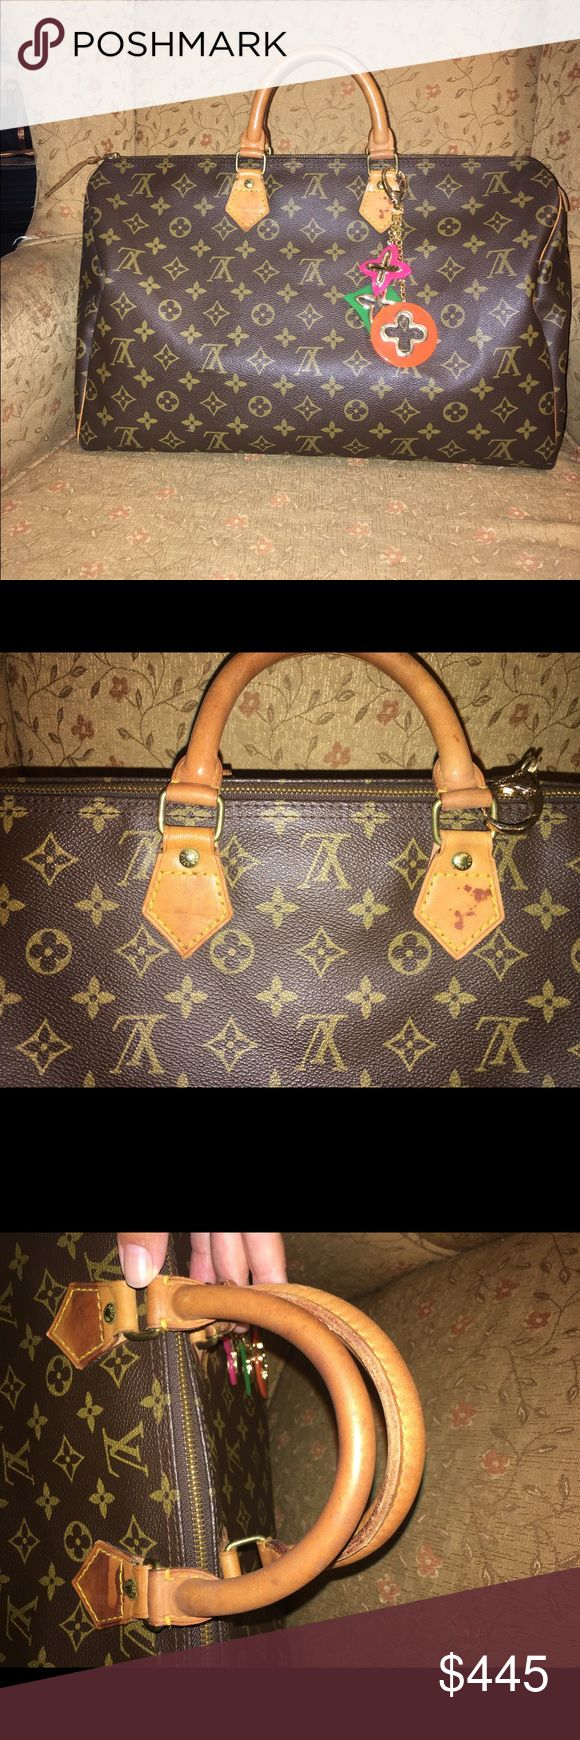 Louis Vuitton Speedy 40 Authentic LV Speedy 40. Some water stains on tabs. No tears or rips. NO TRADES. 🅿️ay🅿️al $350 Louis Vuitton Bags Satchels